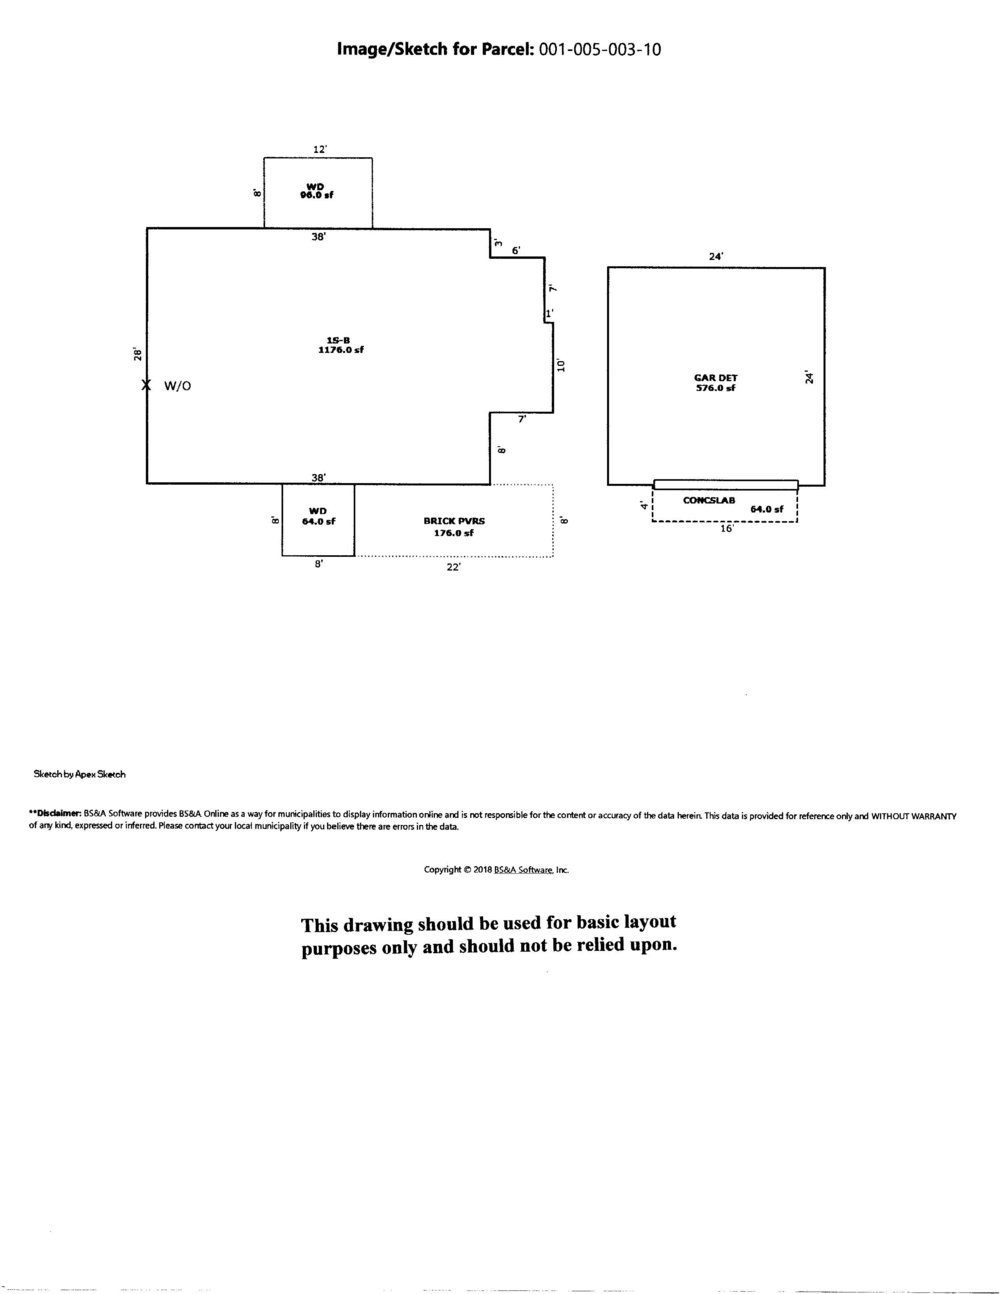 2566 S Pine View Road, Suttons Bay, MI – Affordable 3 Bedroom Suttons Bay Ranch Home for sale by Oltersdorf Realty - Marketing Packet (14).jpg